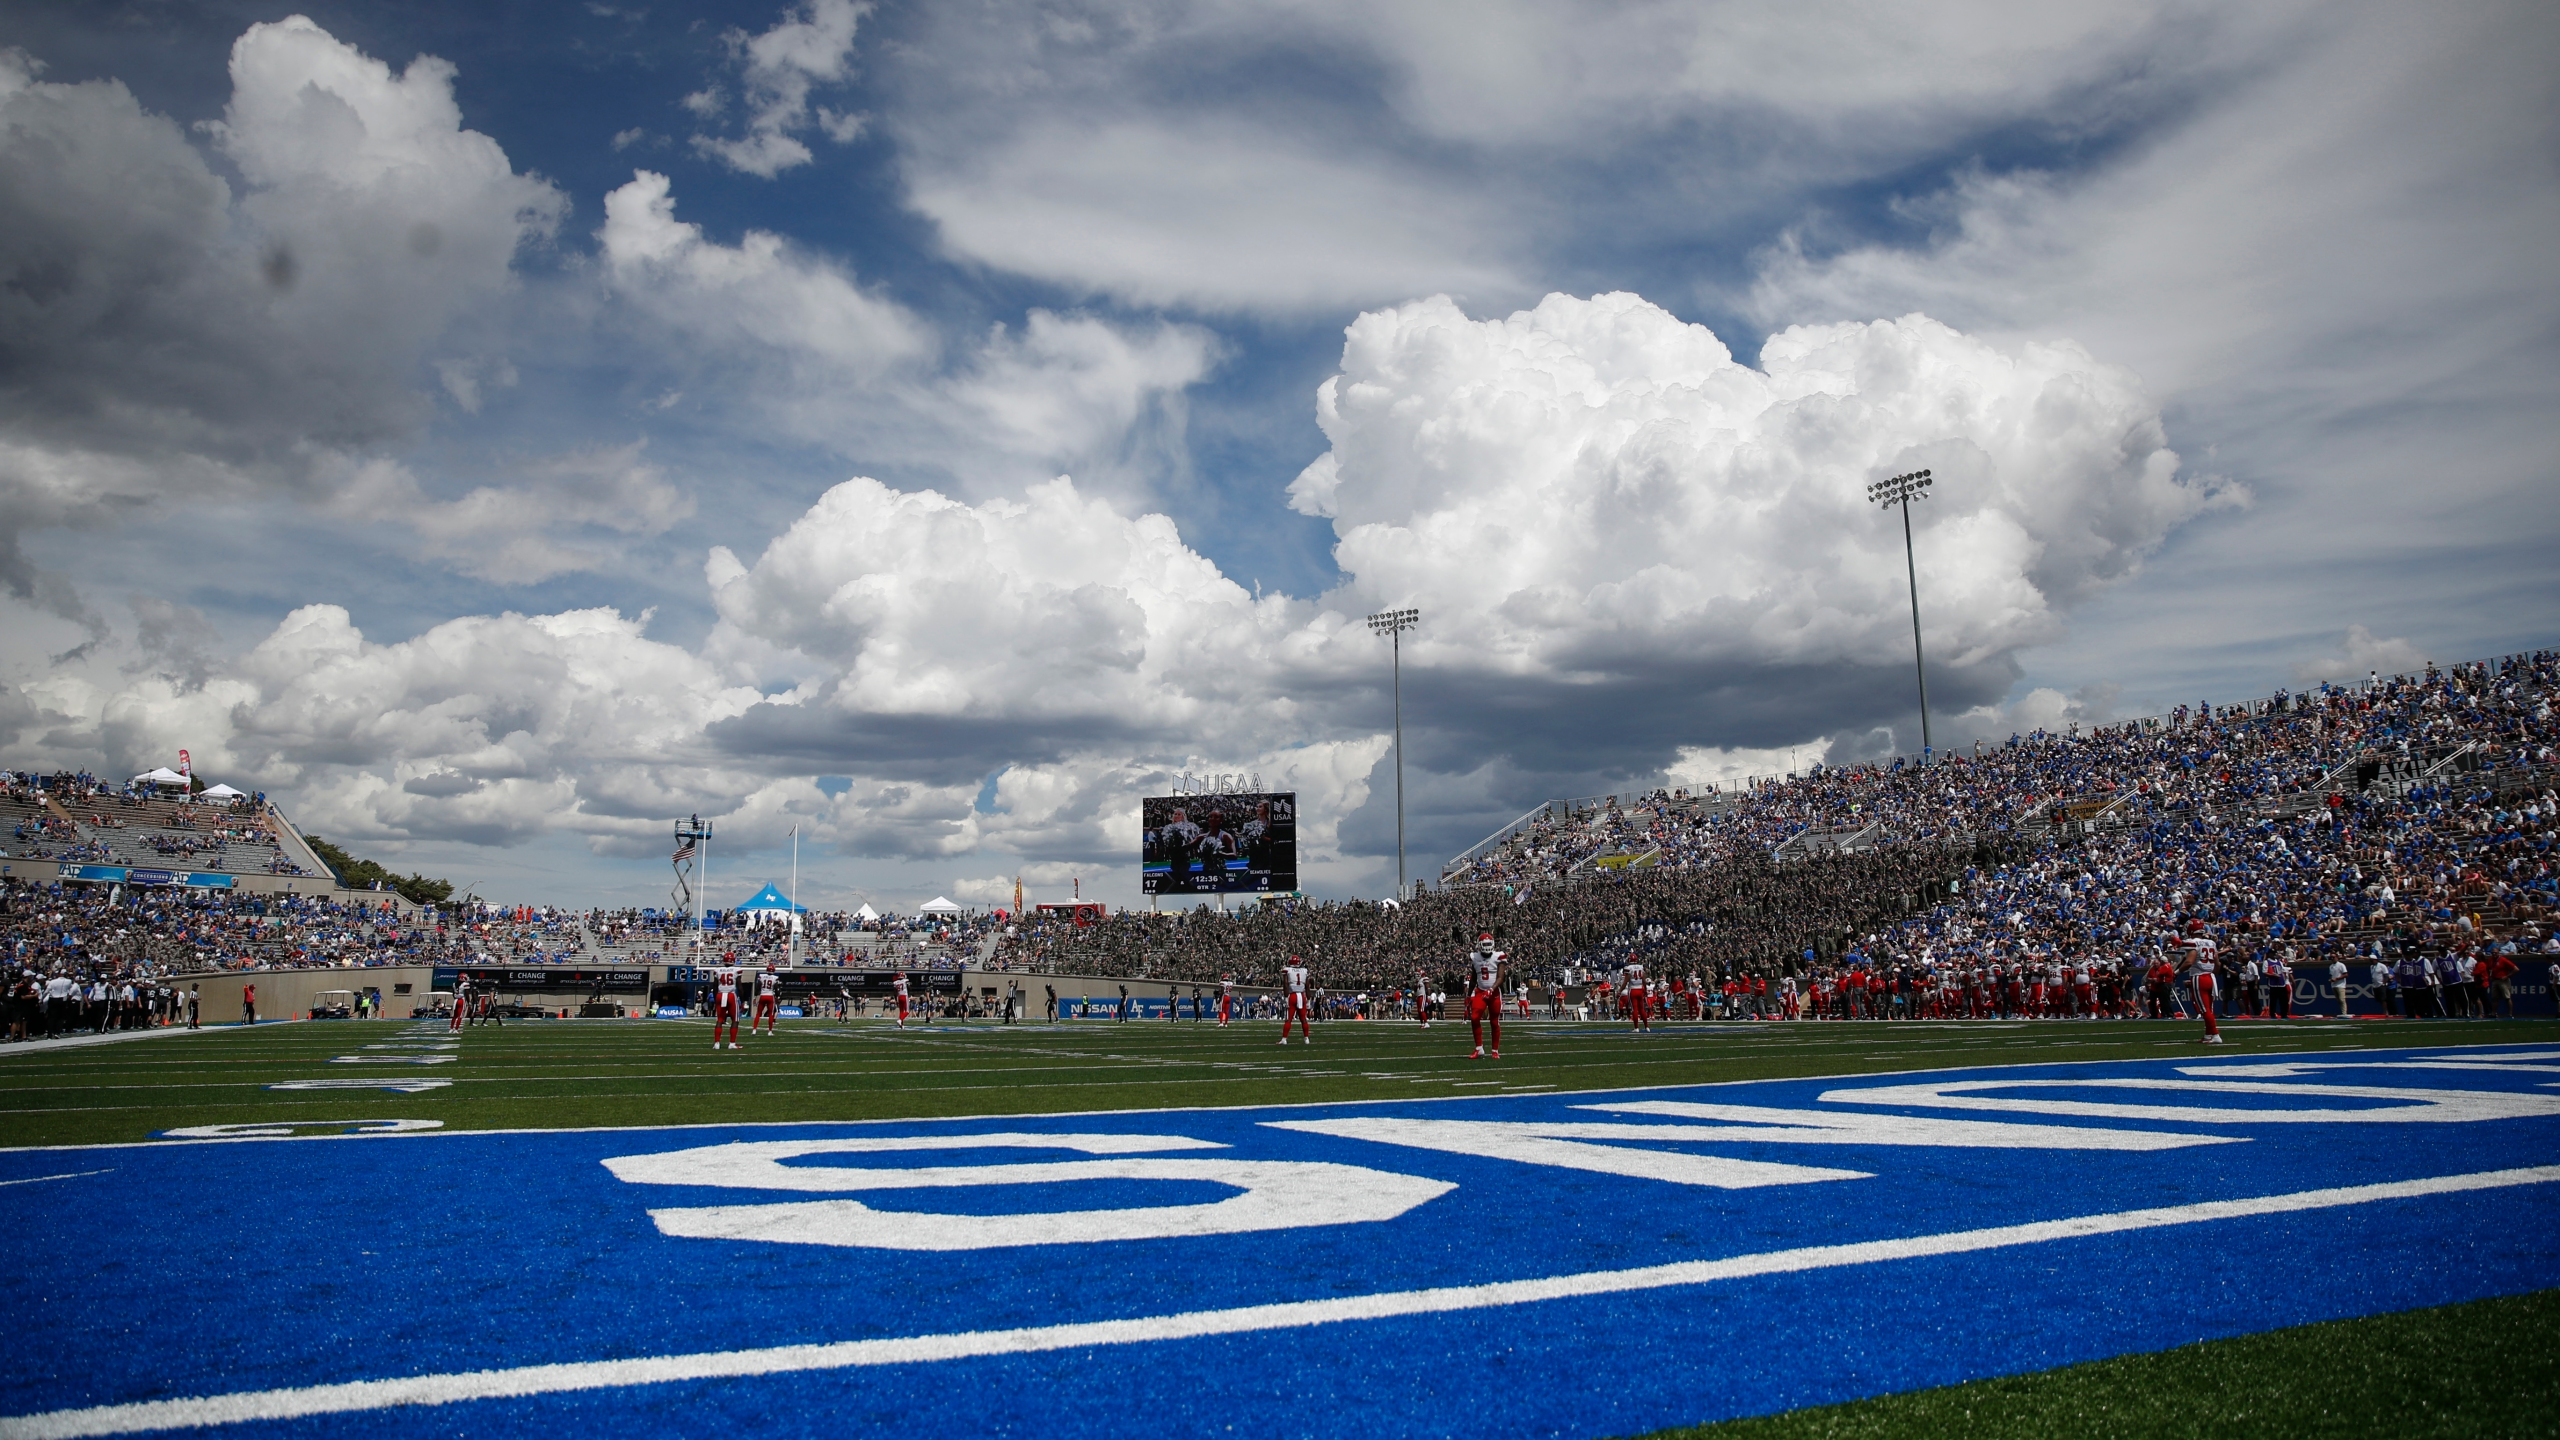 Clouds build over Falcon Stadium as Stony Brook Seawolves face the Air Force Falcons in the first half of an NCAA college football game Saturday, Sept